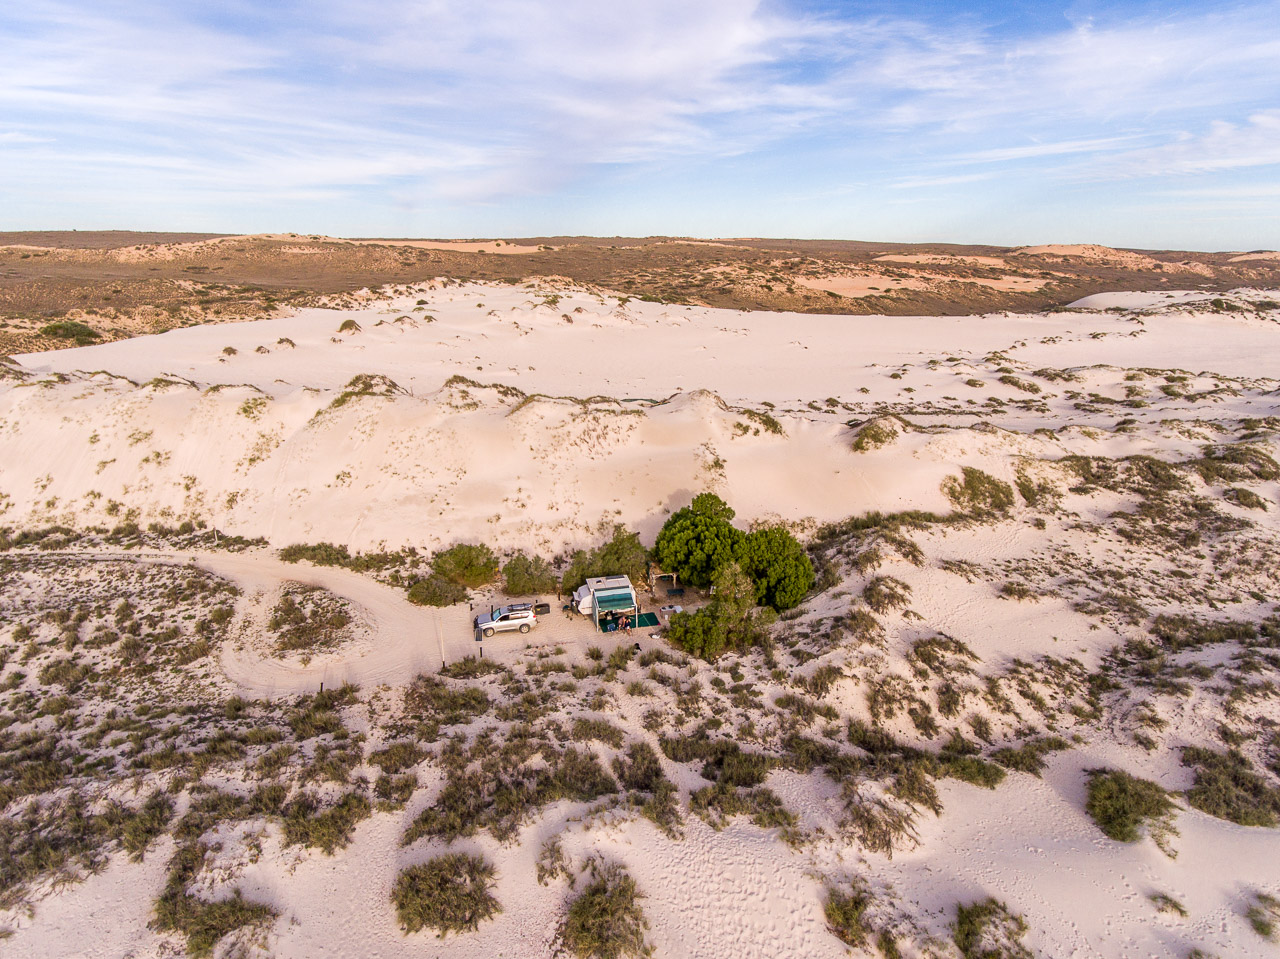 Drone image of wilderness camping on the north west coast of Australia